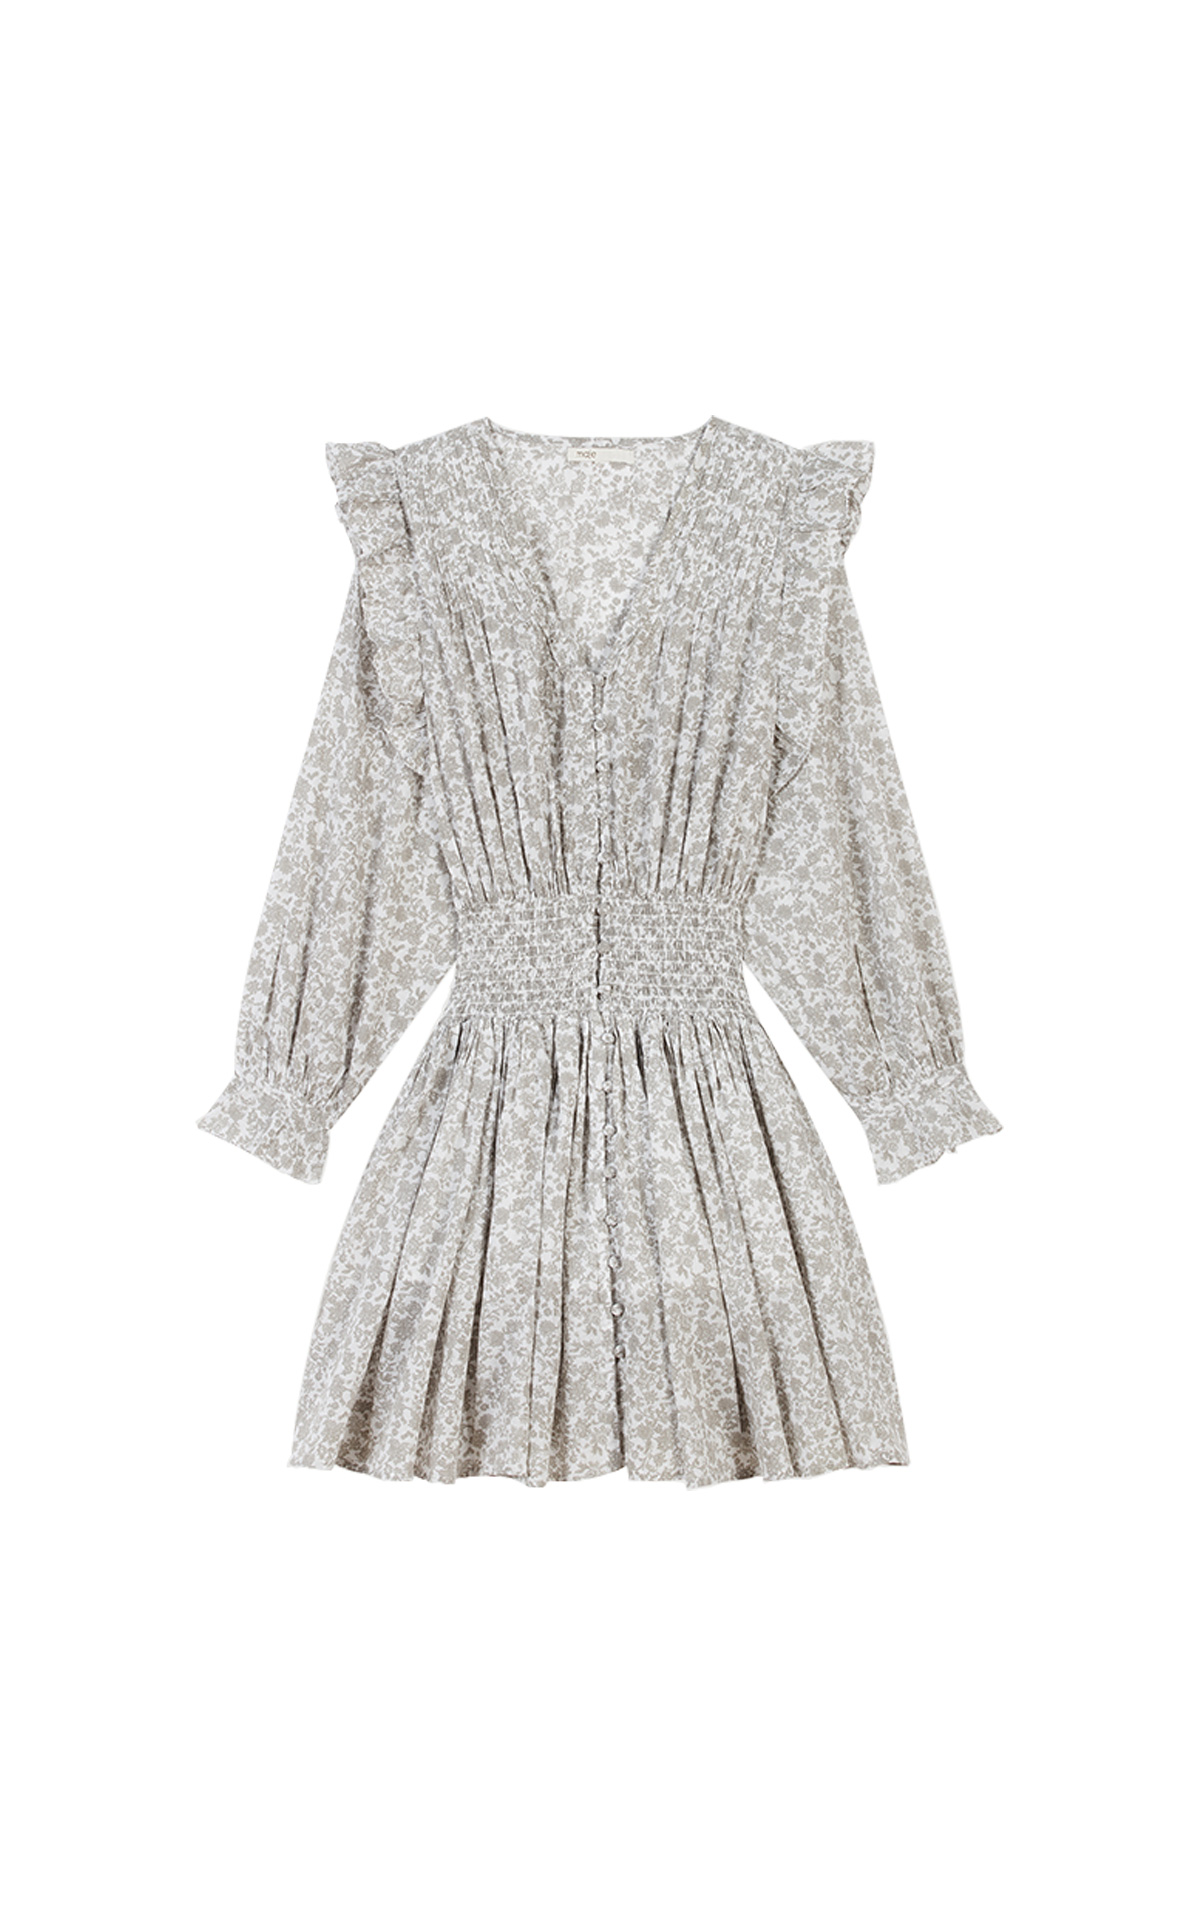 Maje Short floral-print ruffled smocking dress in grey at The Bicester Village Shopping Collection